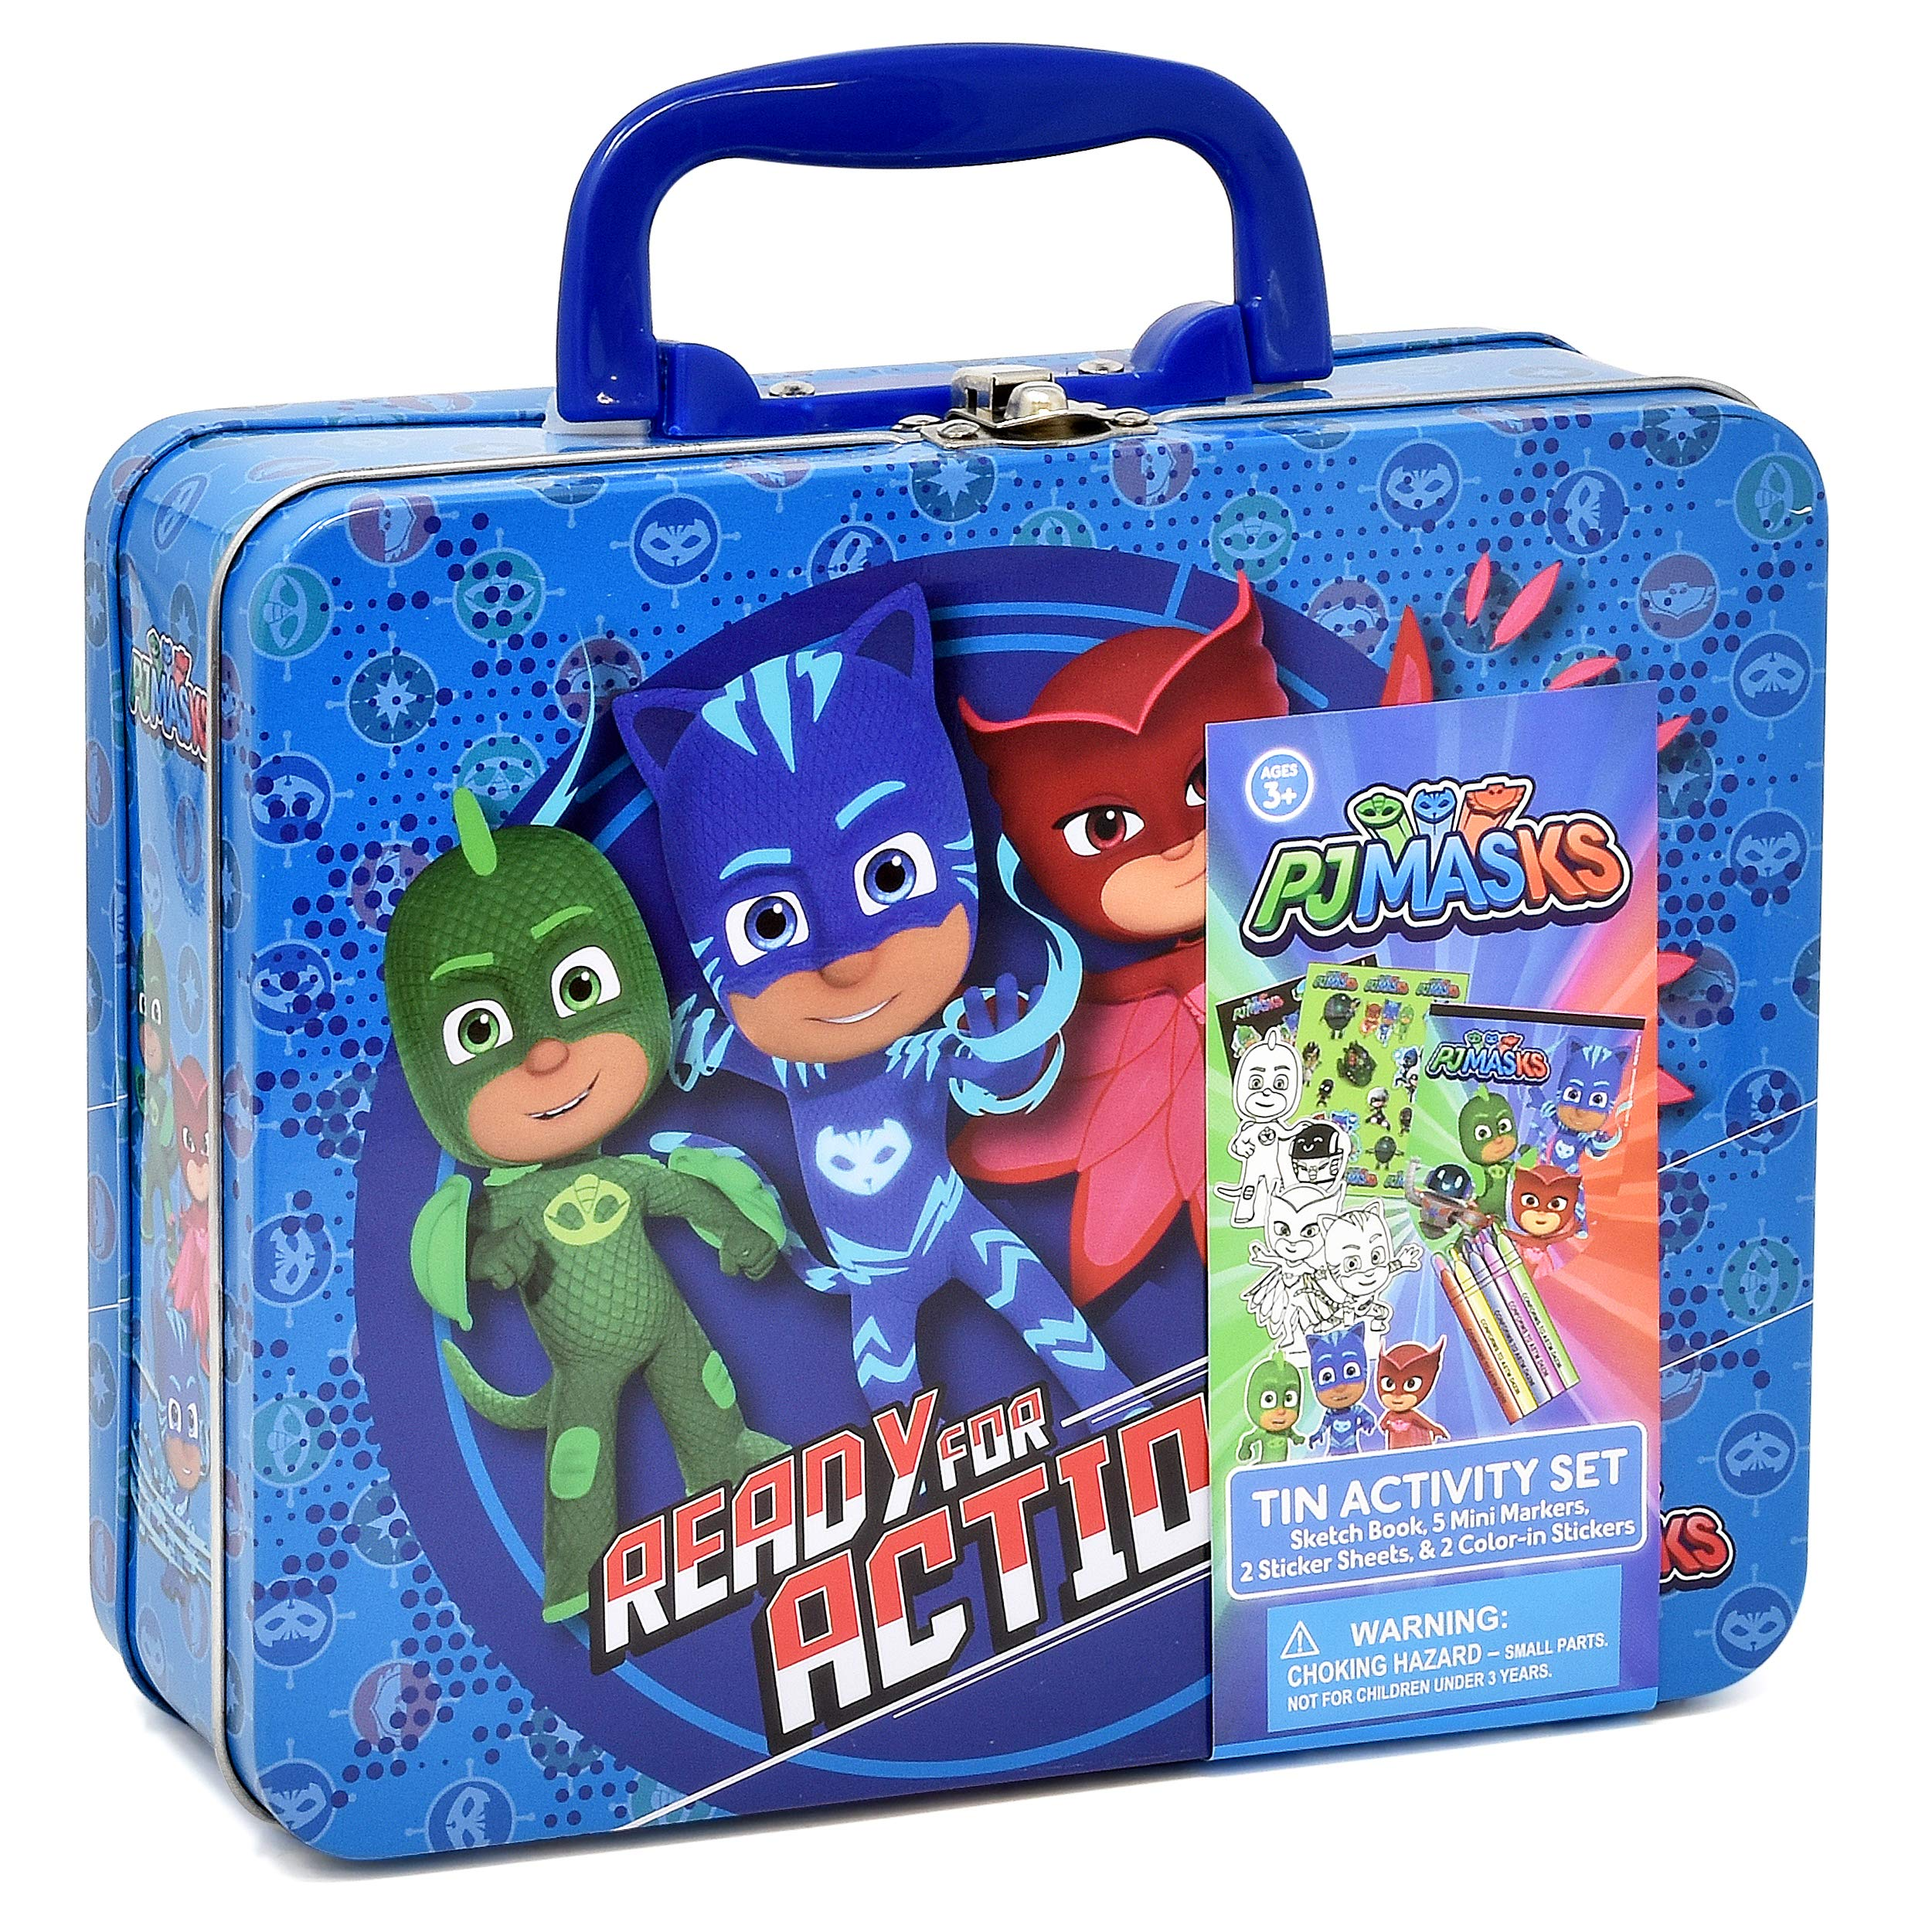 PJ Masks Coloring and Activity Tin Box, Includes Markers, Stickers, Mess Free Crafts Color Kit in Tin Box, for Toddlers, Boys and Kids